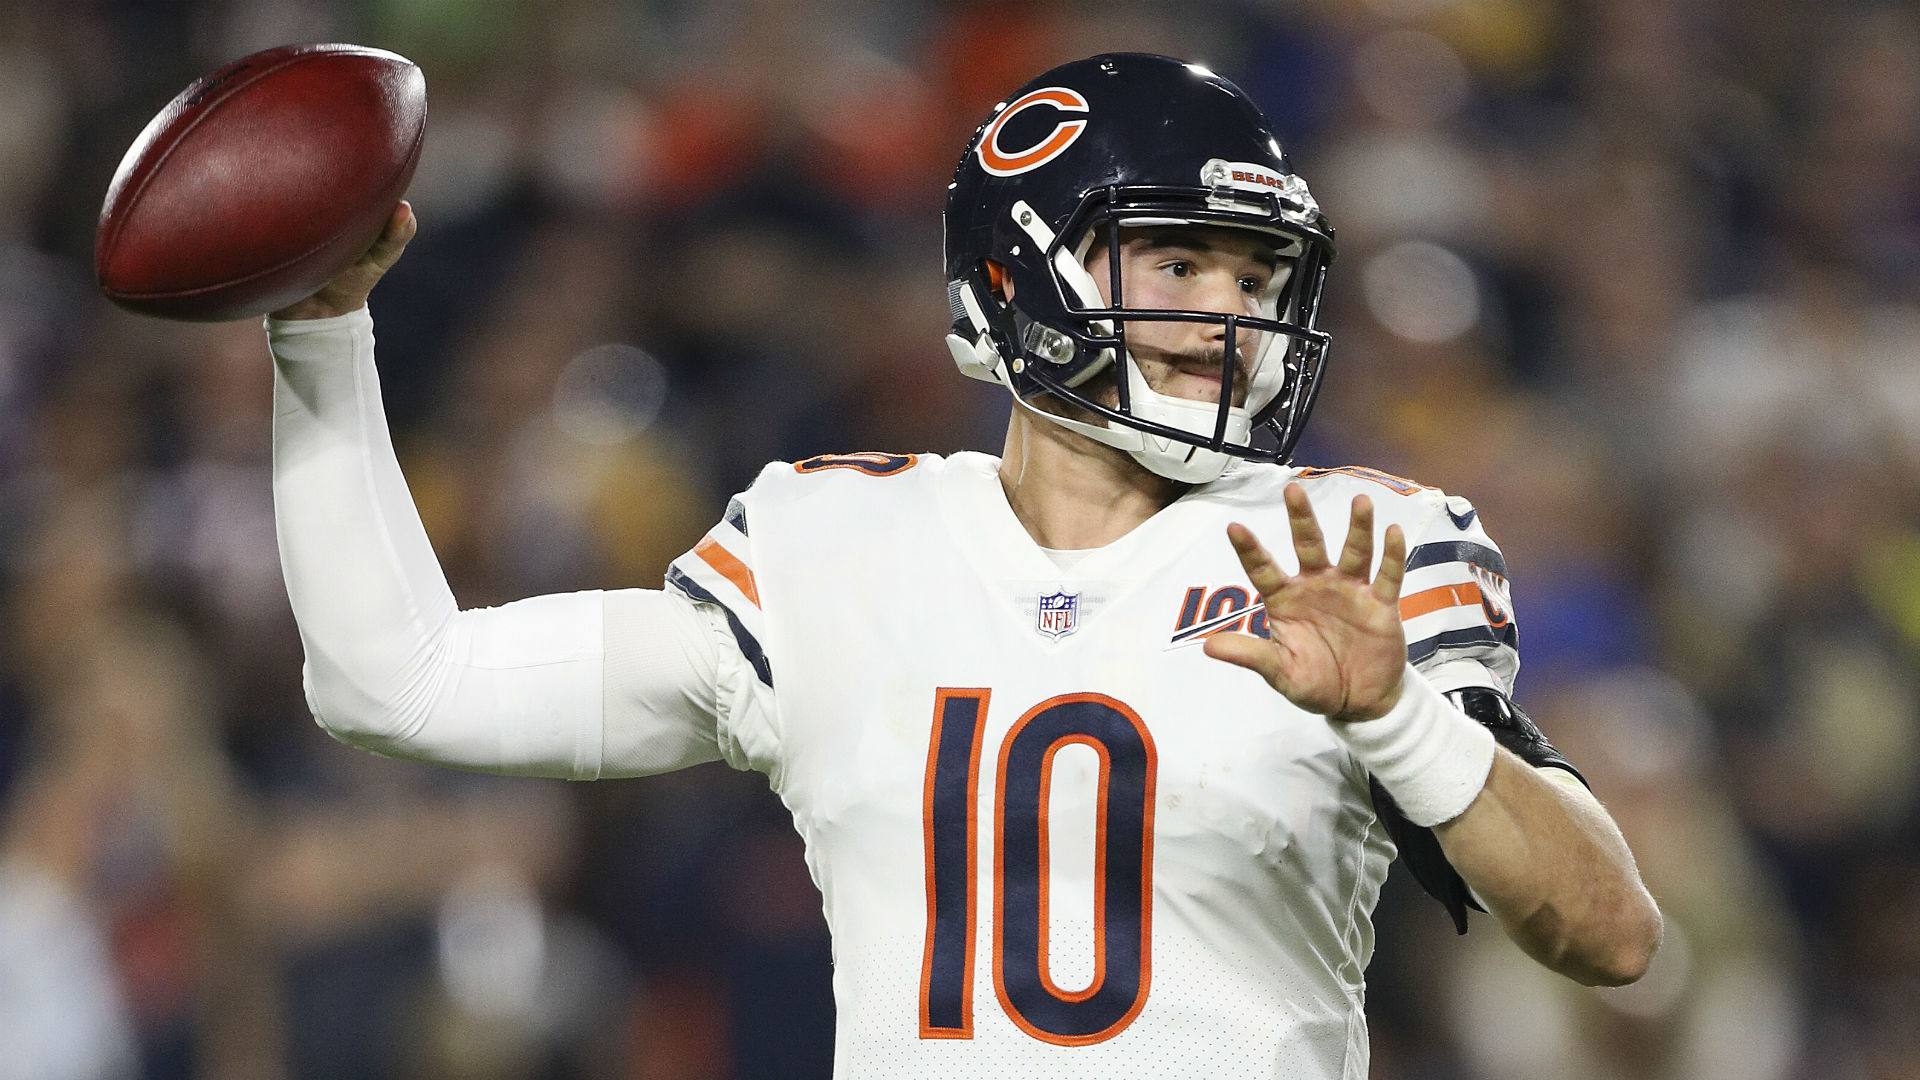 Mitchell Trubisky motivated by Bears bringing in Nick Foles: 'It's a business decision'